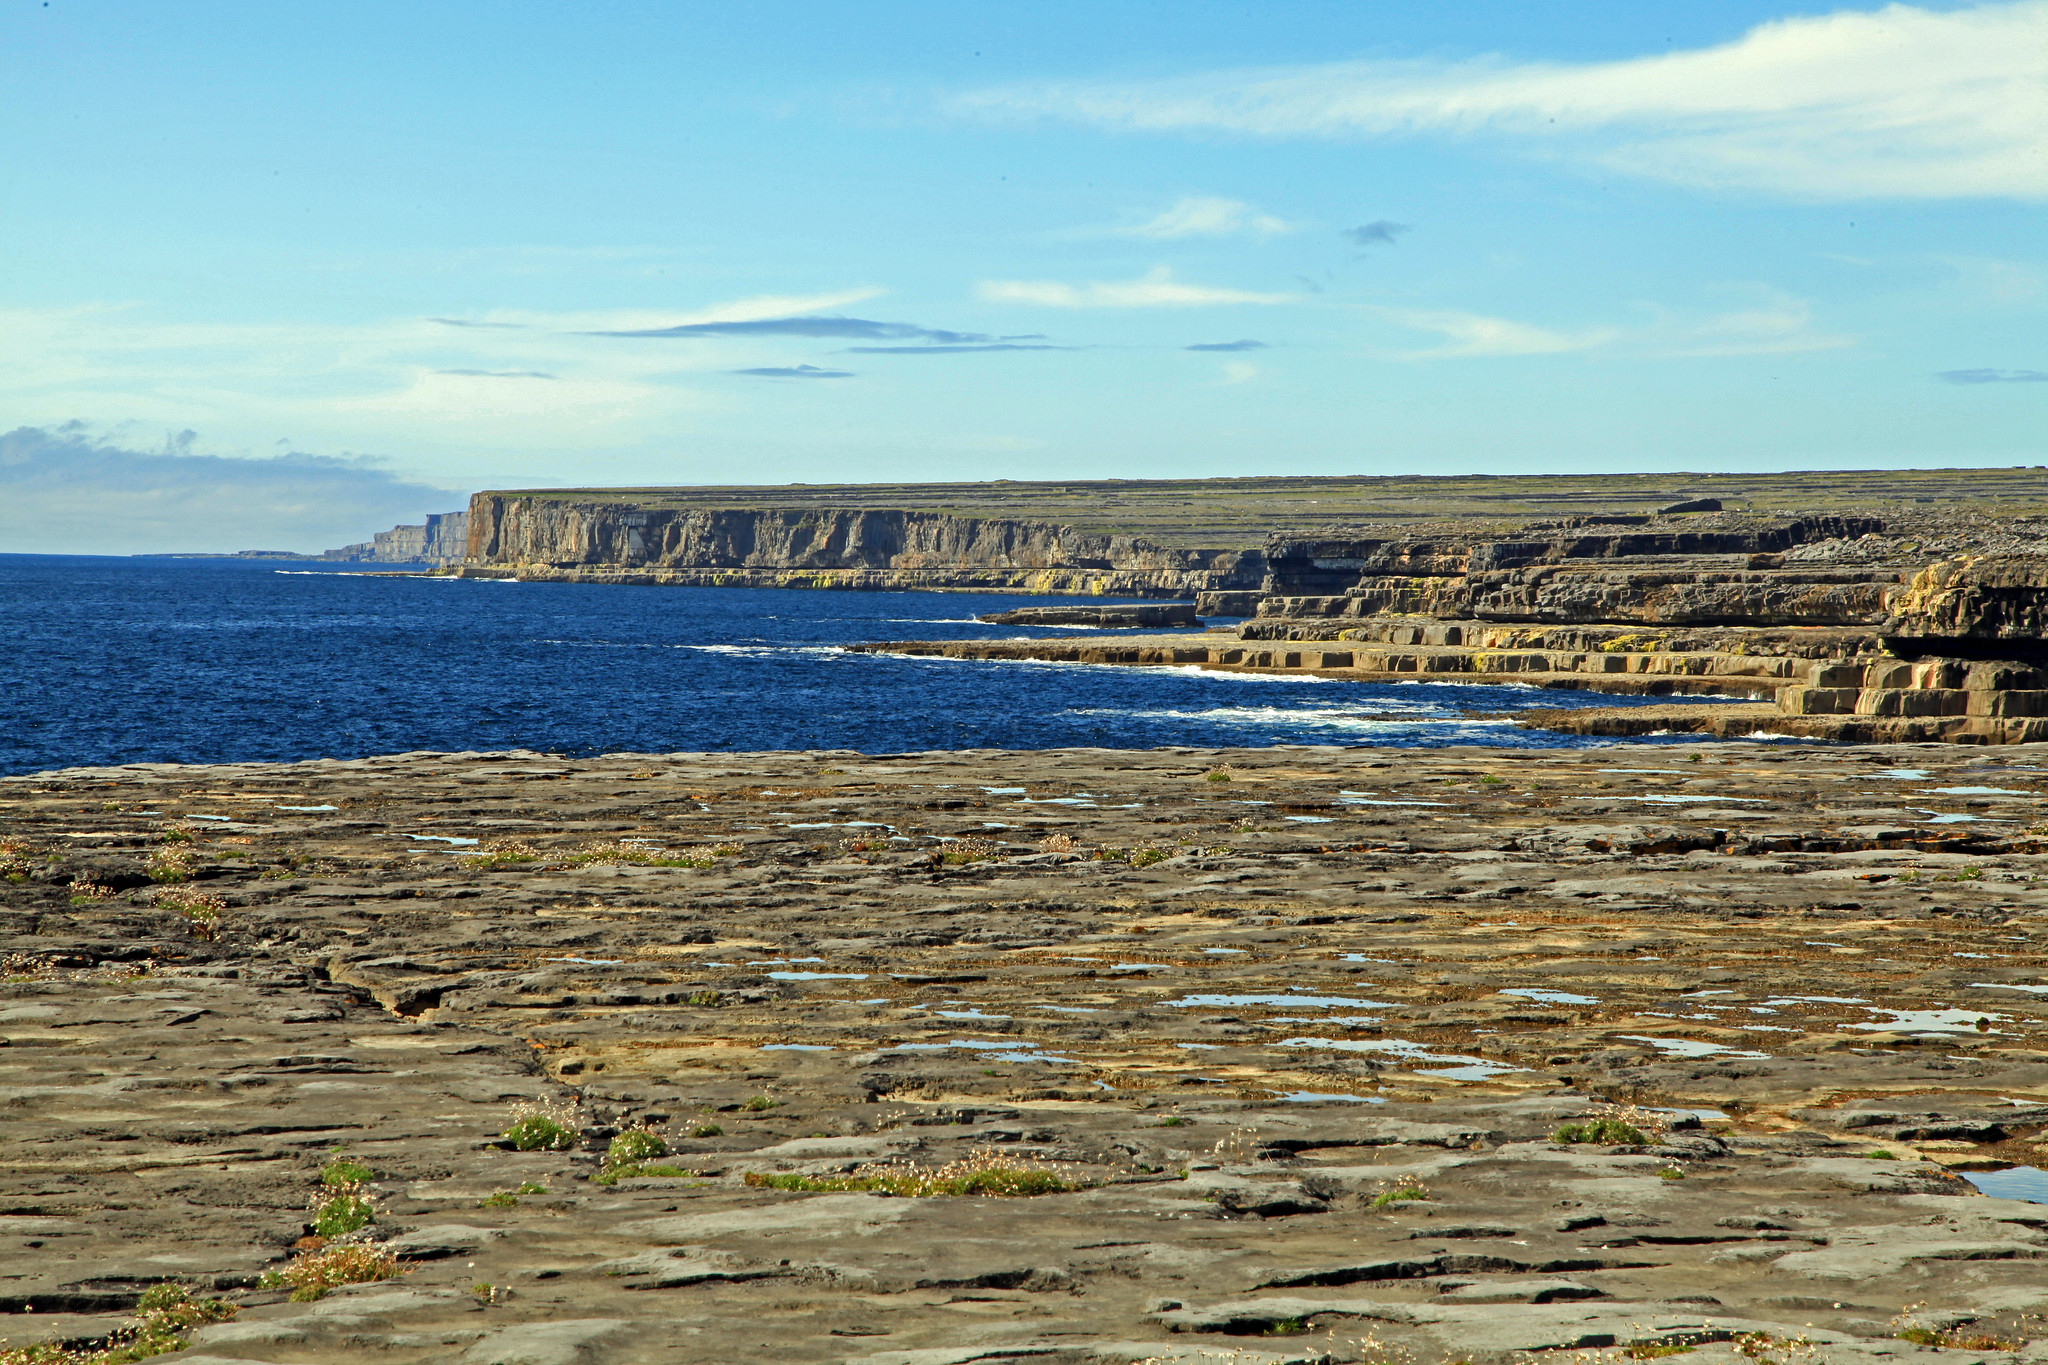 The very edge of the Burren, forming a huge, sheer cliffline as it dives into the Atlantic ocean.